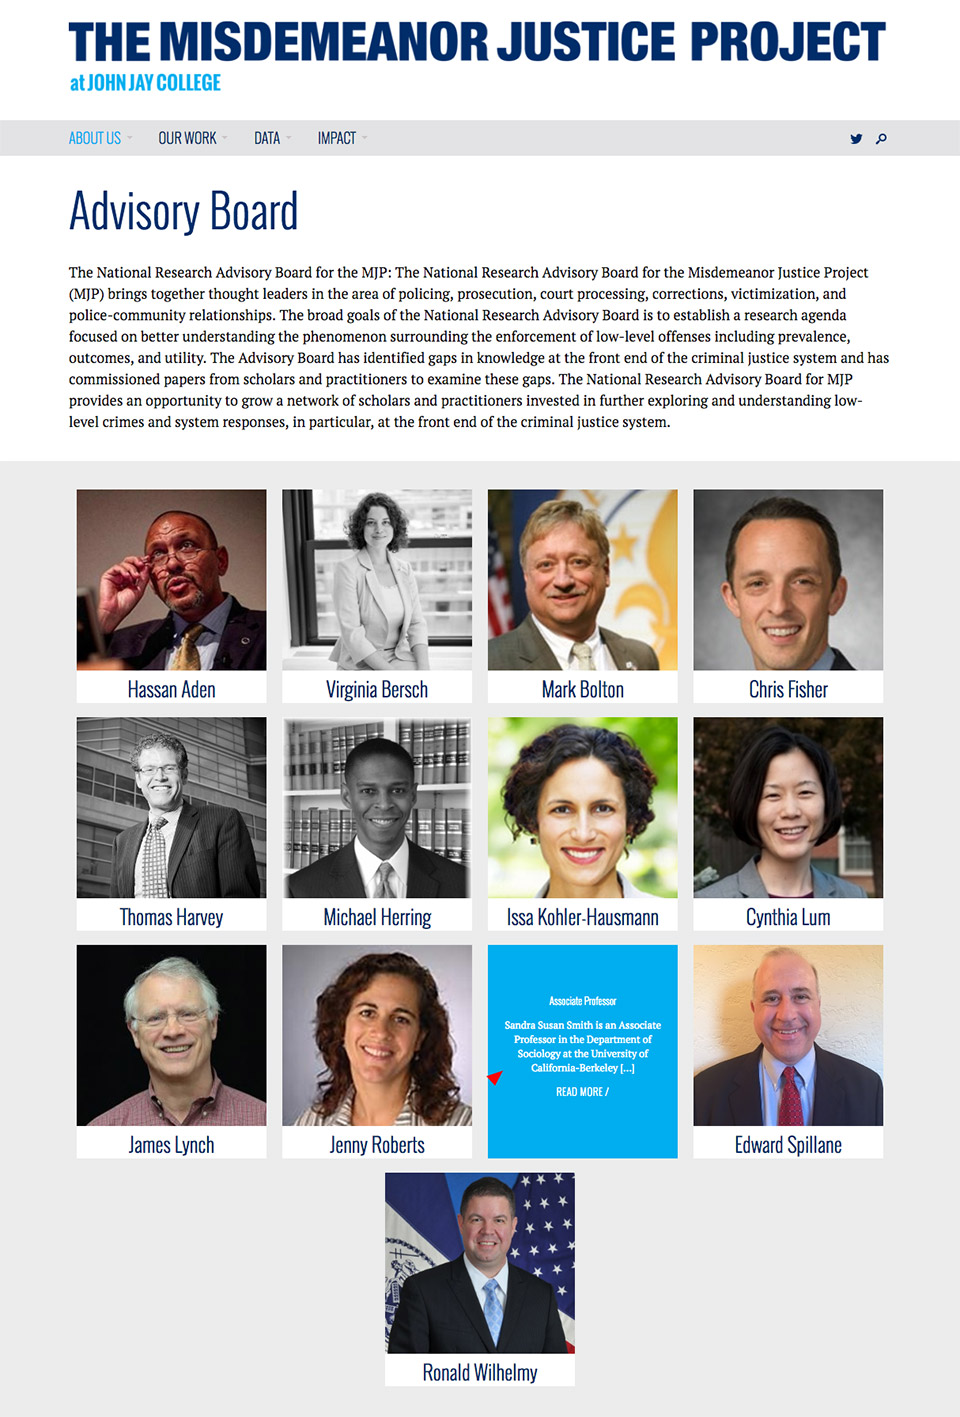 The Misdemeanor Justice Project: Advisory Board Grid